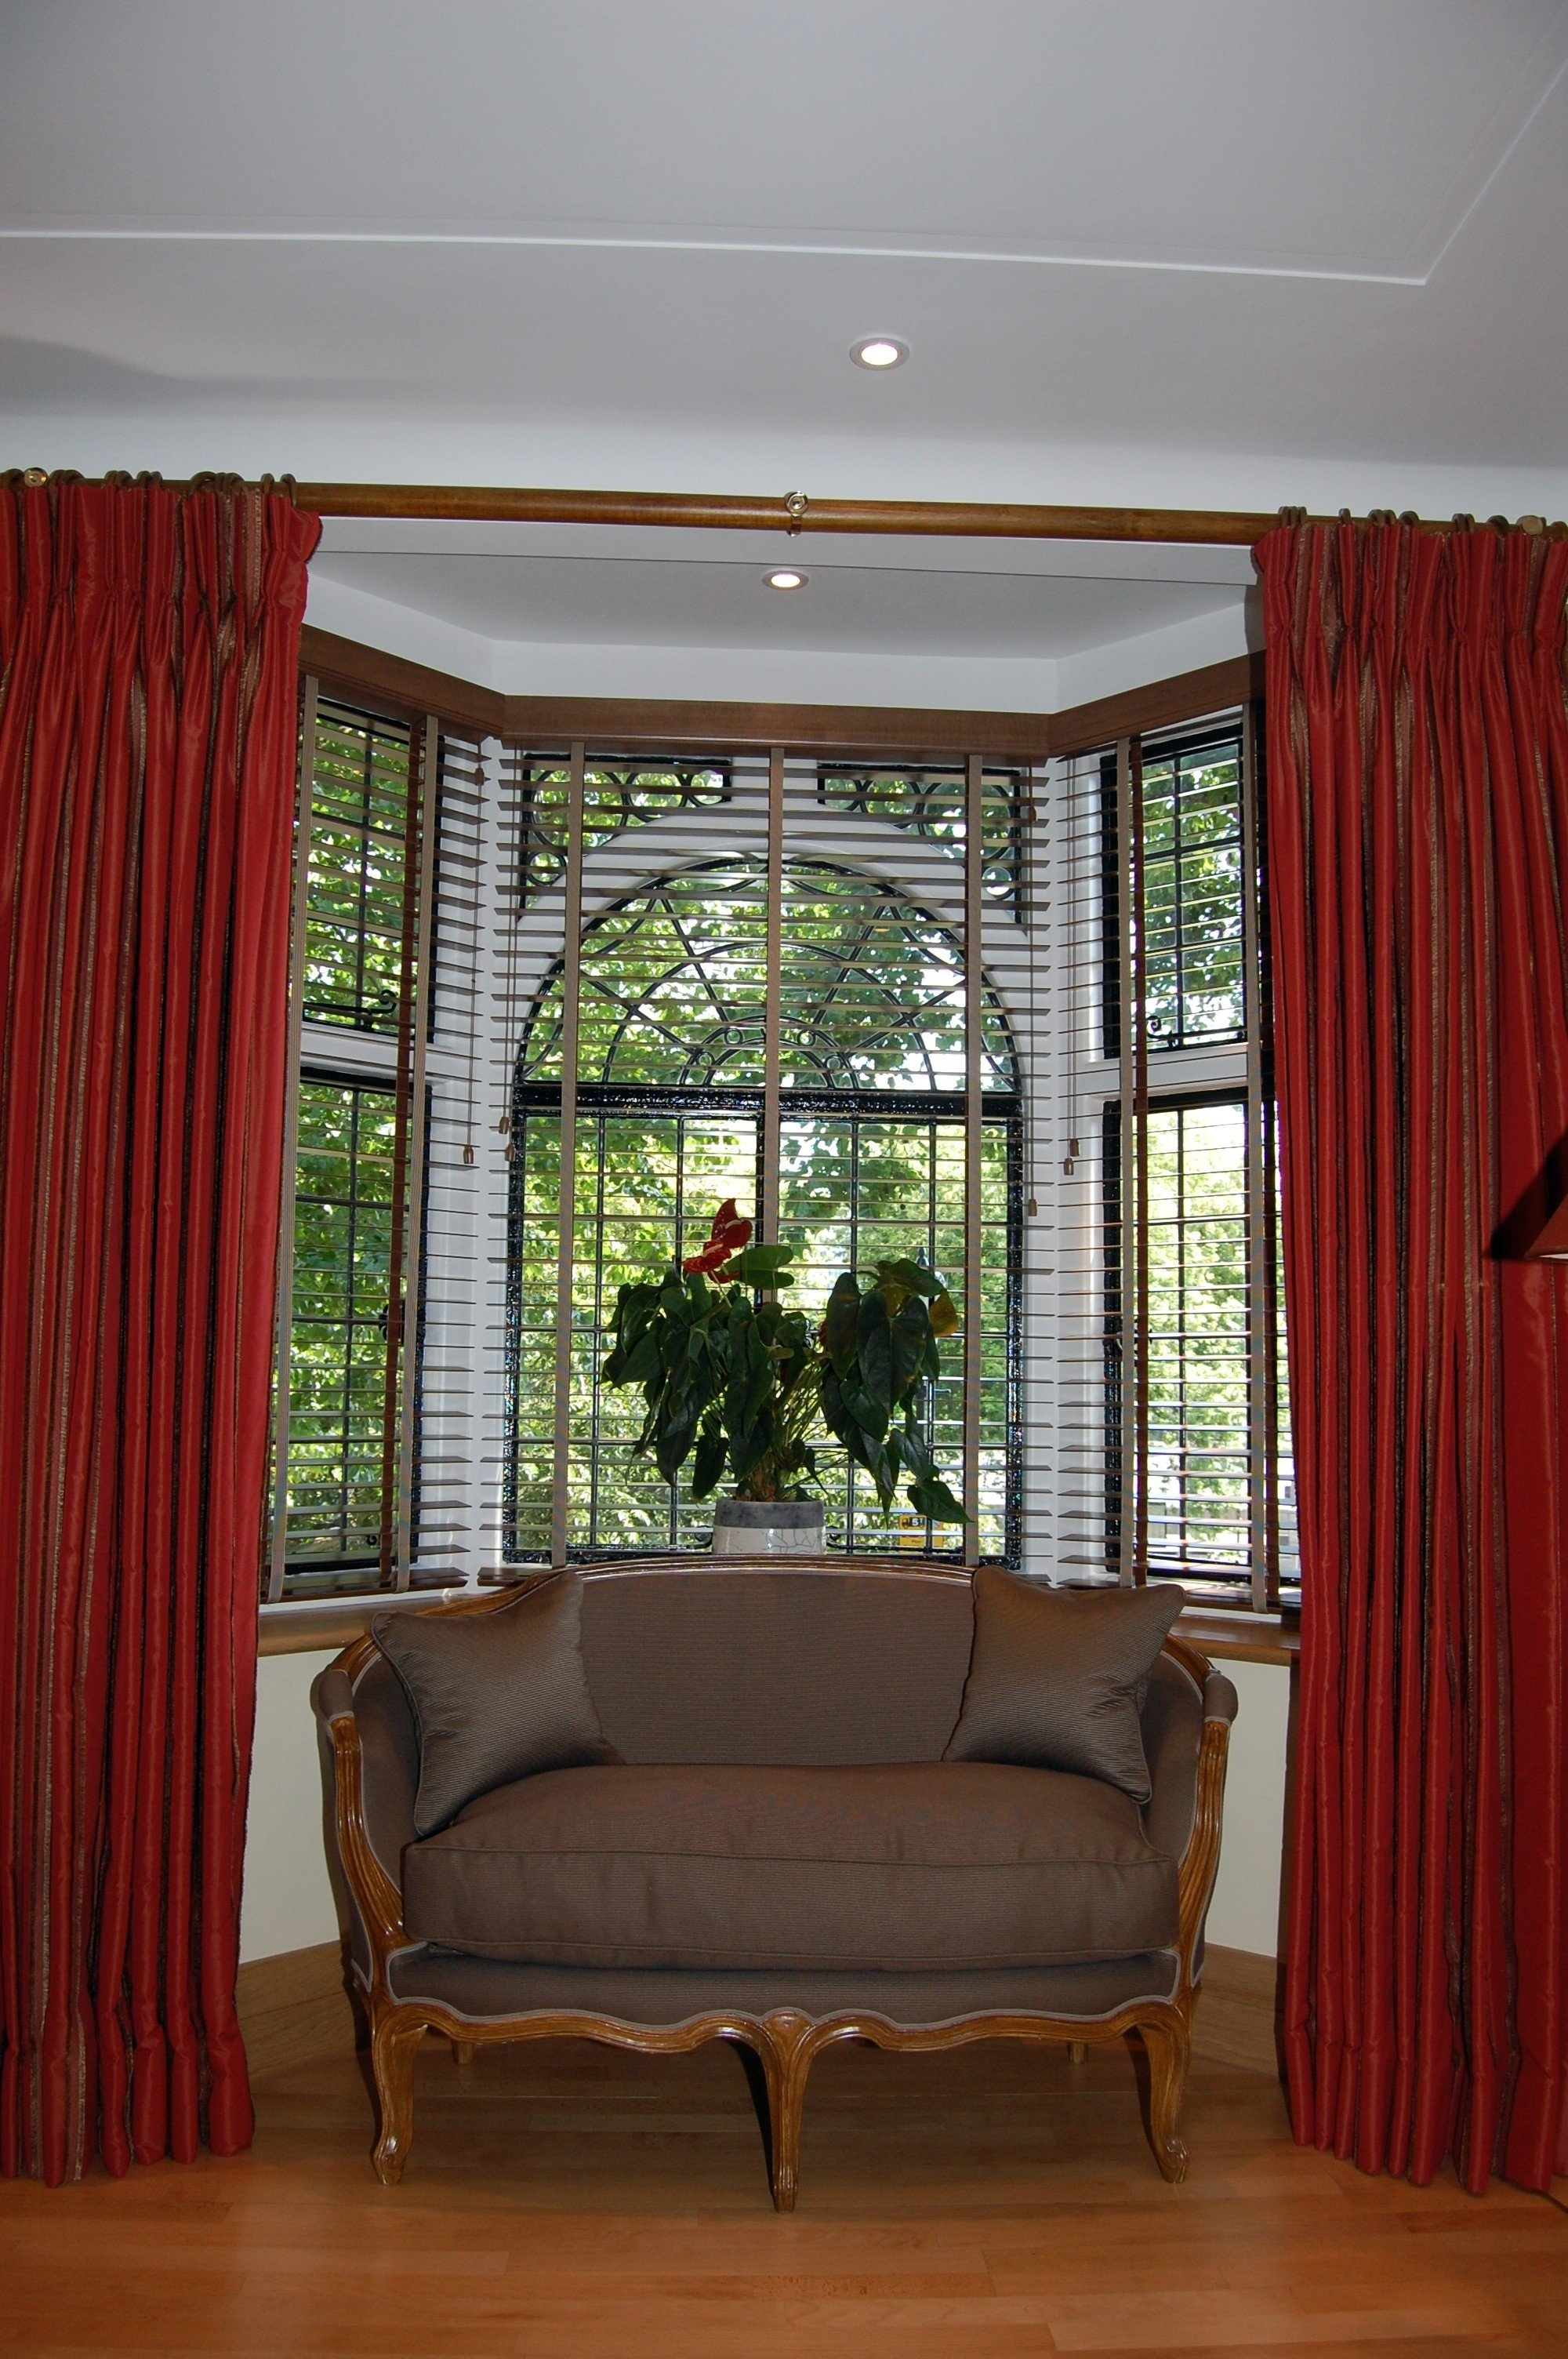 10 Wonderful Bay Window Treatment Ideas Pictures vibrant window treatment ideas for bay windows decorating curtains 2020